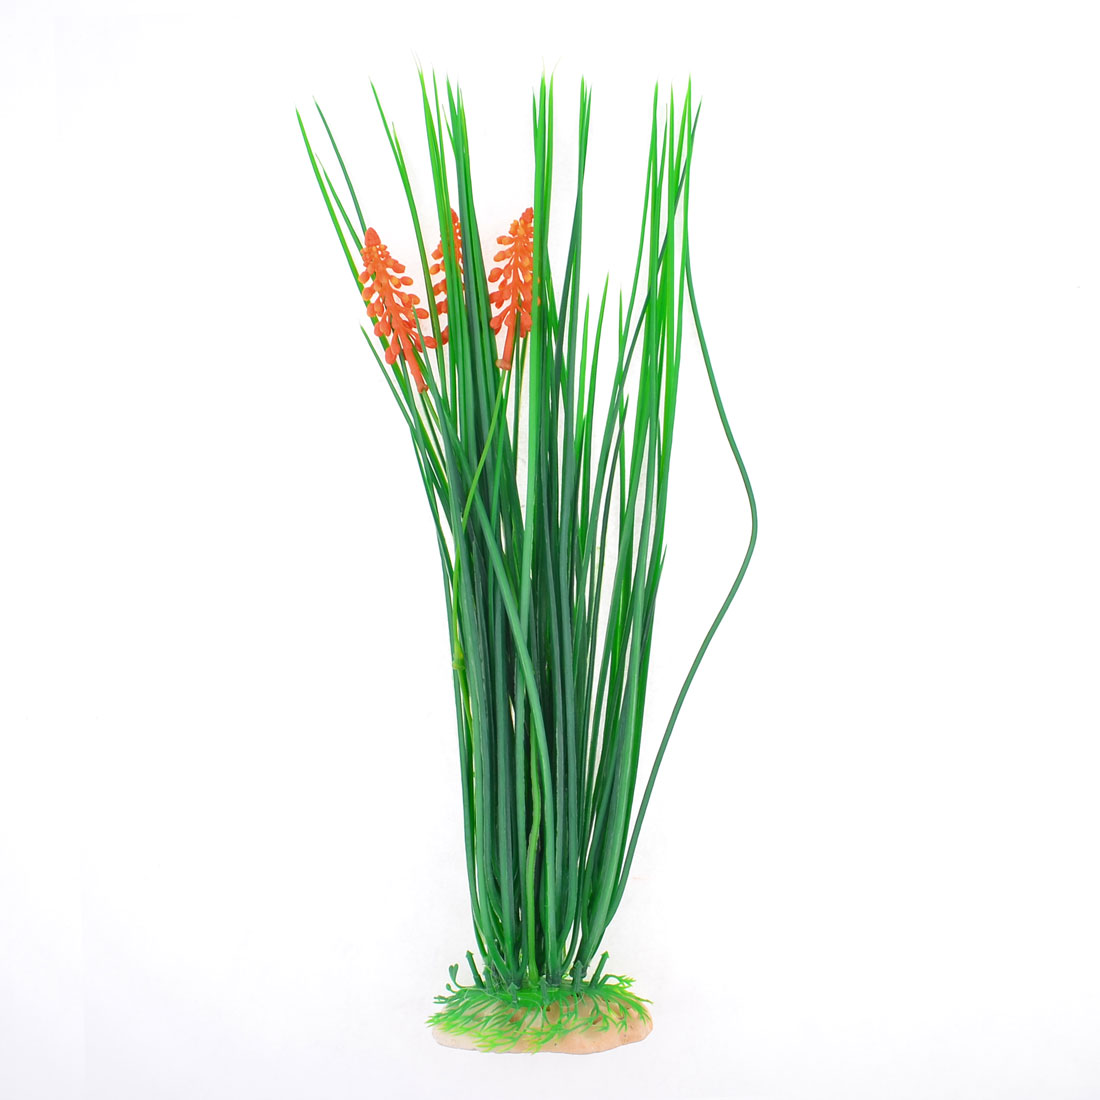 Aquarium Plastic Underwater Plant Leaf Grass Green Orange w Ceramic Base